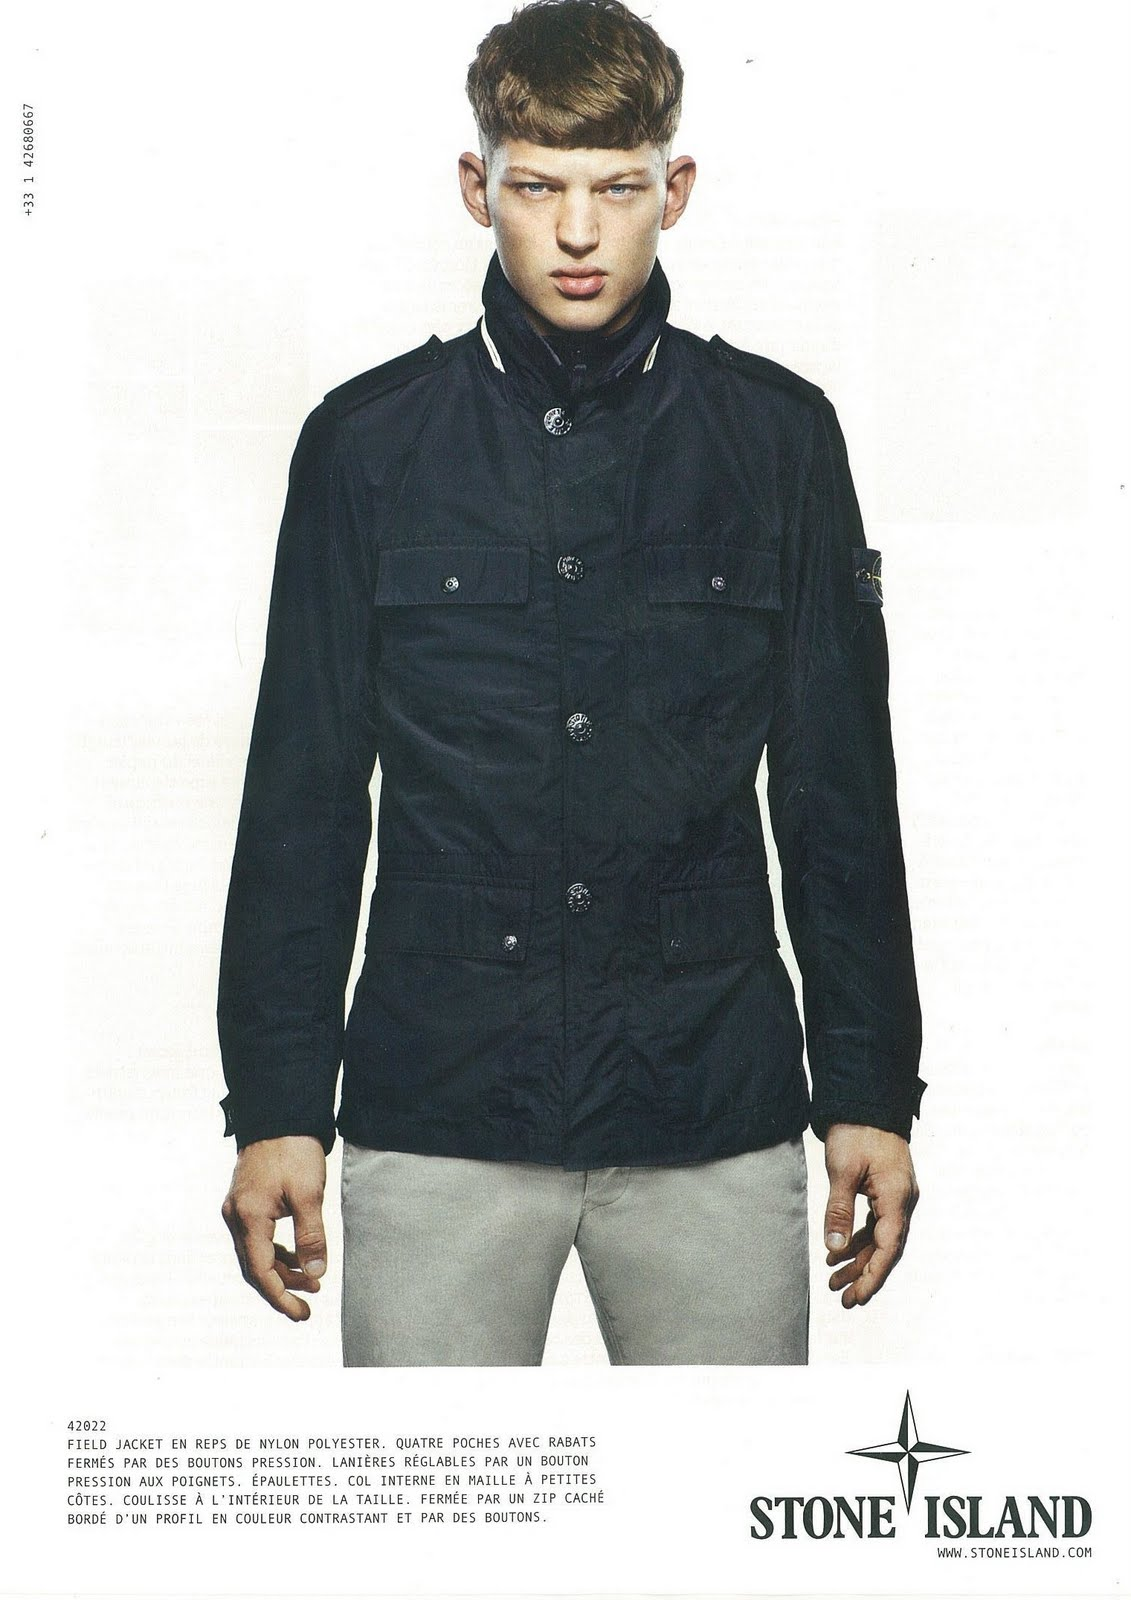 Stone Island Spring Summer 2011 Ad Campaign Preview